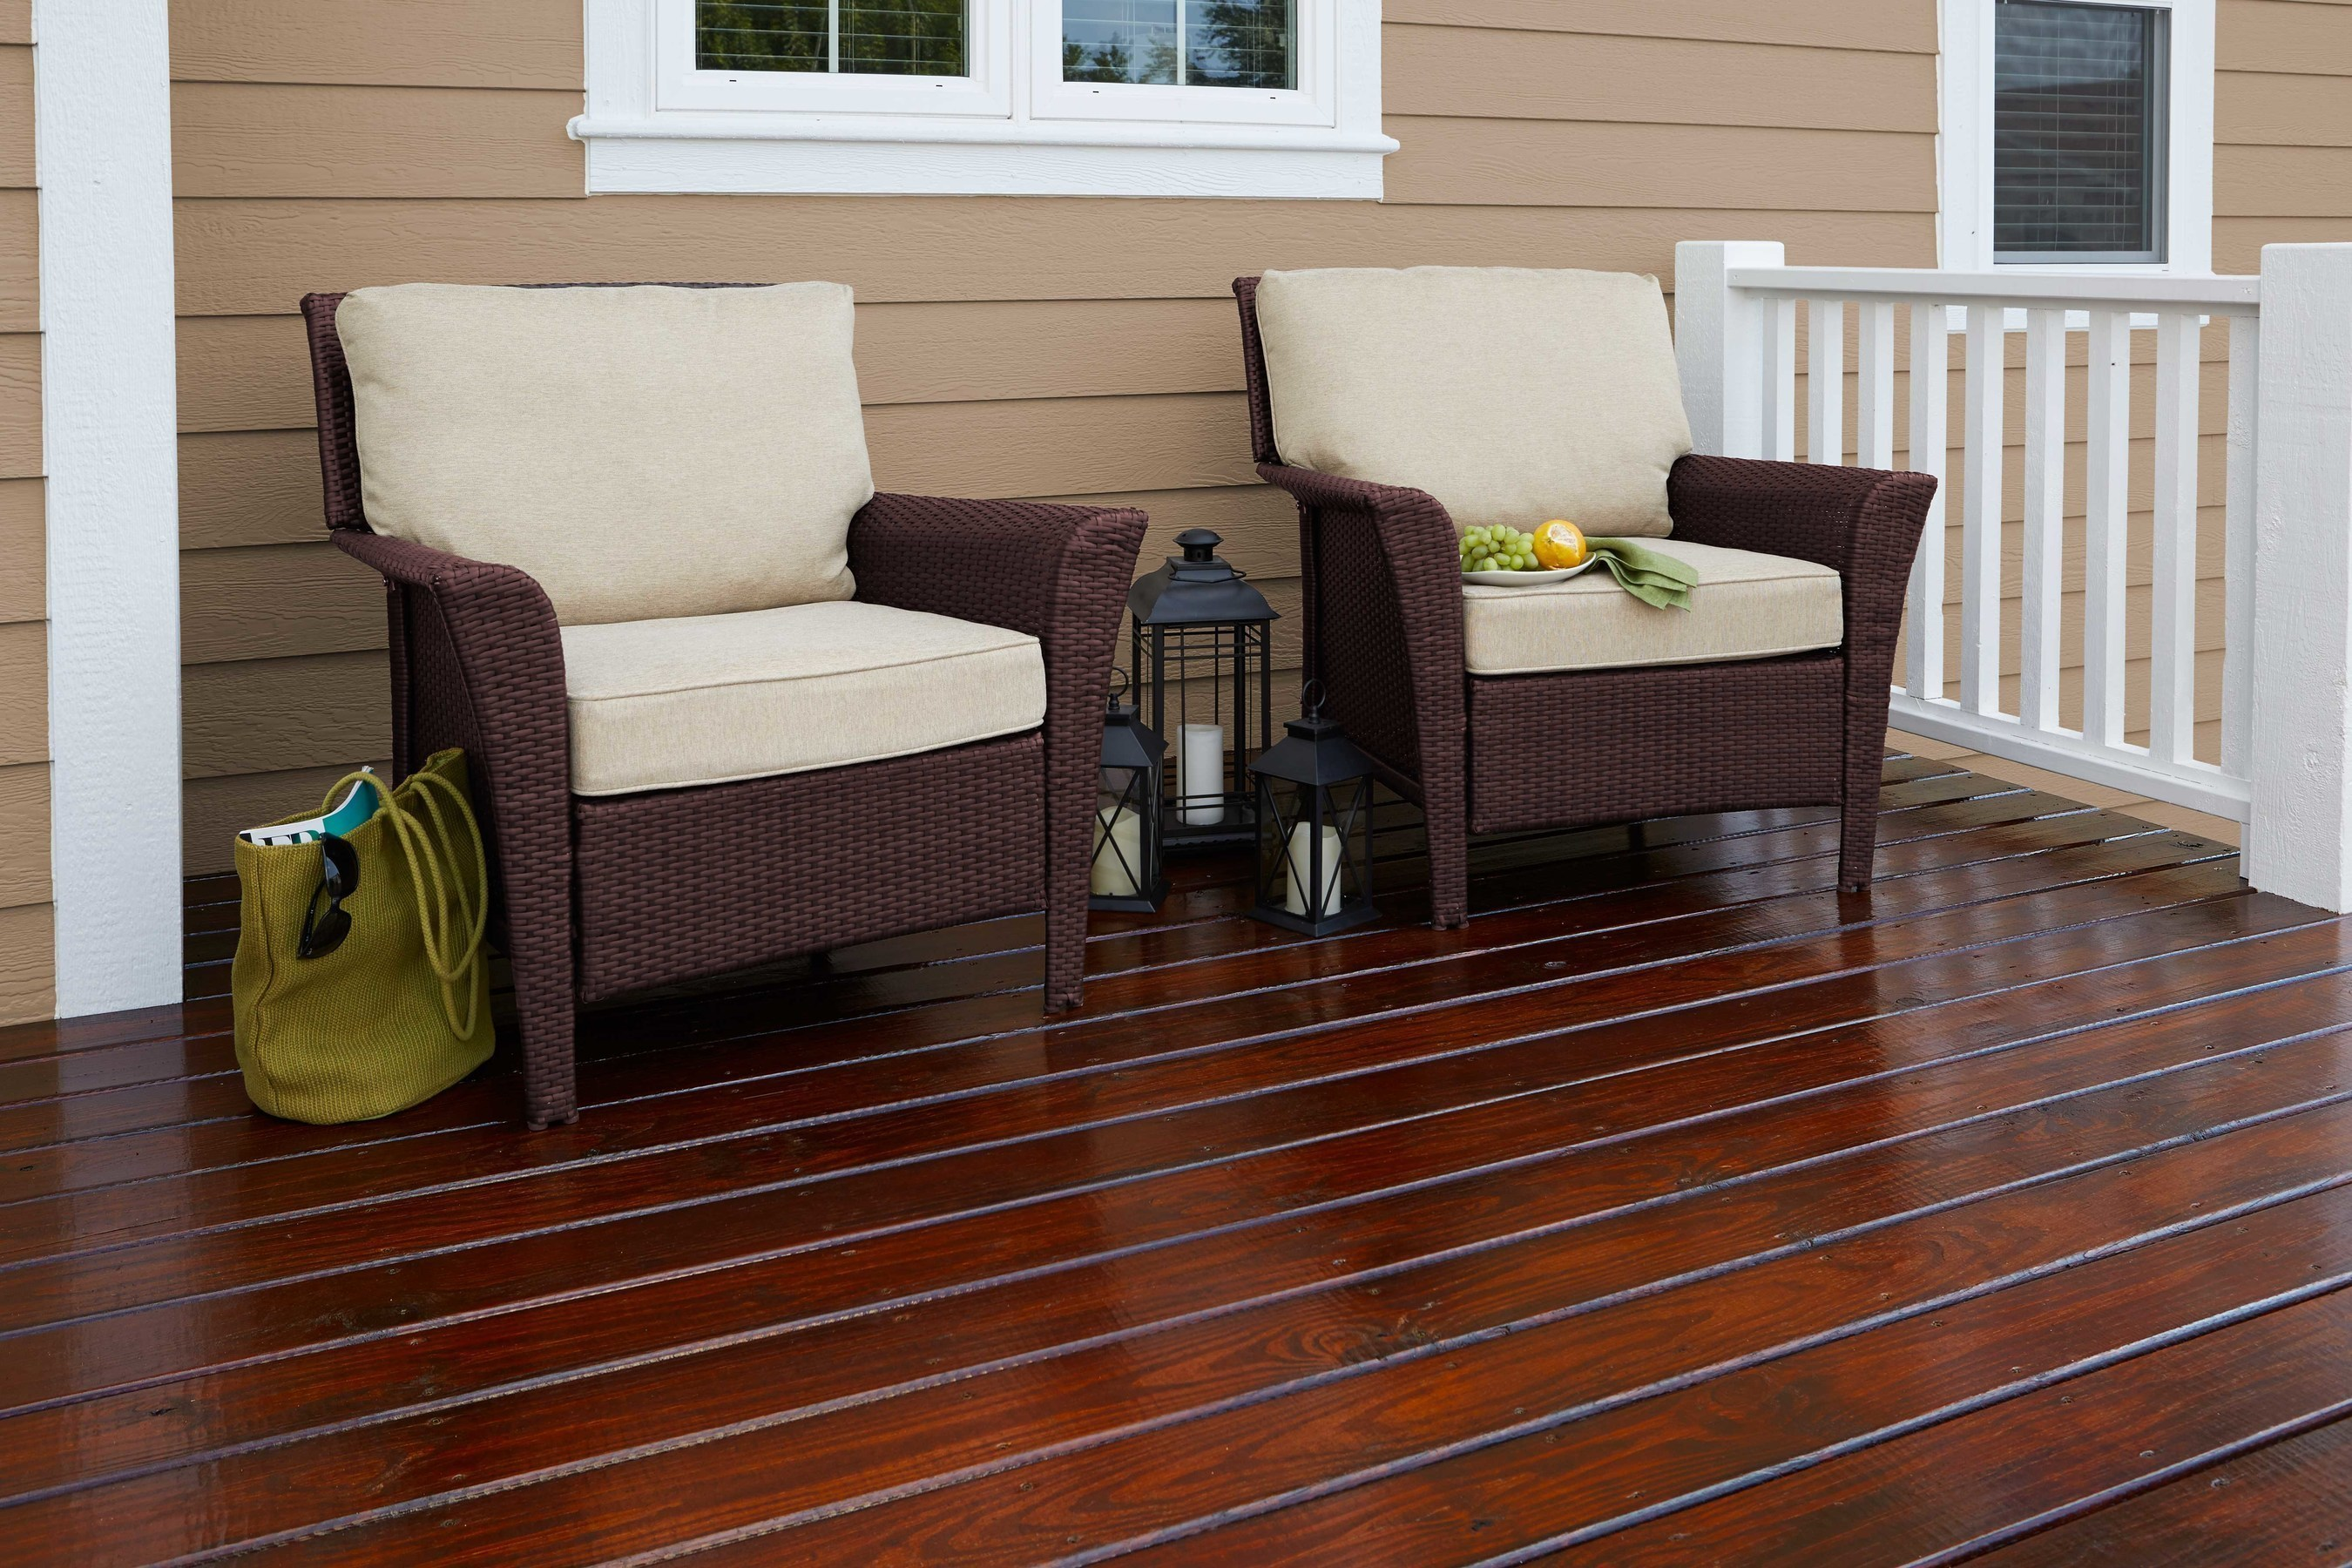 Cabot Gold stain provides a luxurious finish that blurs the lines between indoor and outdoor living with features that give homeowner's what they really want - beauty. The new product will be available at home improvement retailers beginning spring 2016. Cabot Gold is available in four different stain colors and can be used on both cedar and pine. Stain colors include Sun-Drenched Oak, Sunlit Walnut, Fireside Cherry and Moonlight Mahogany. Cabot Gold has a suggested retail price of $19.98 for a quart and...